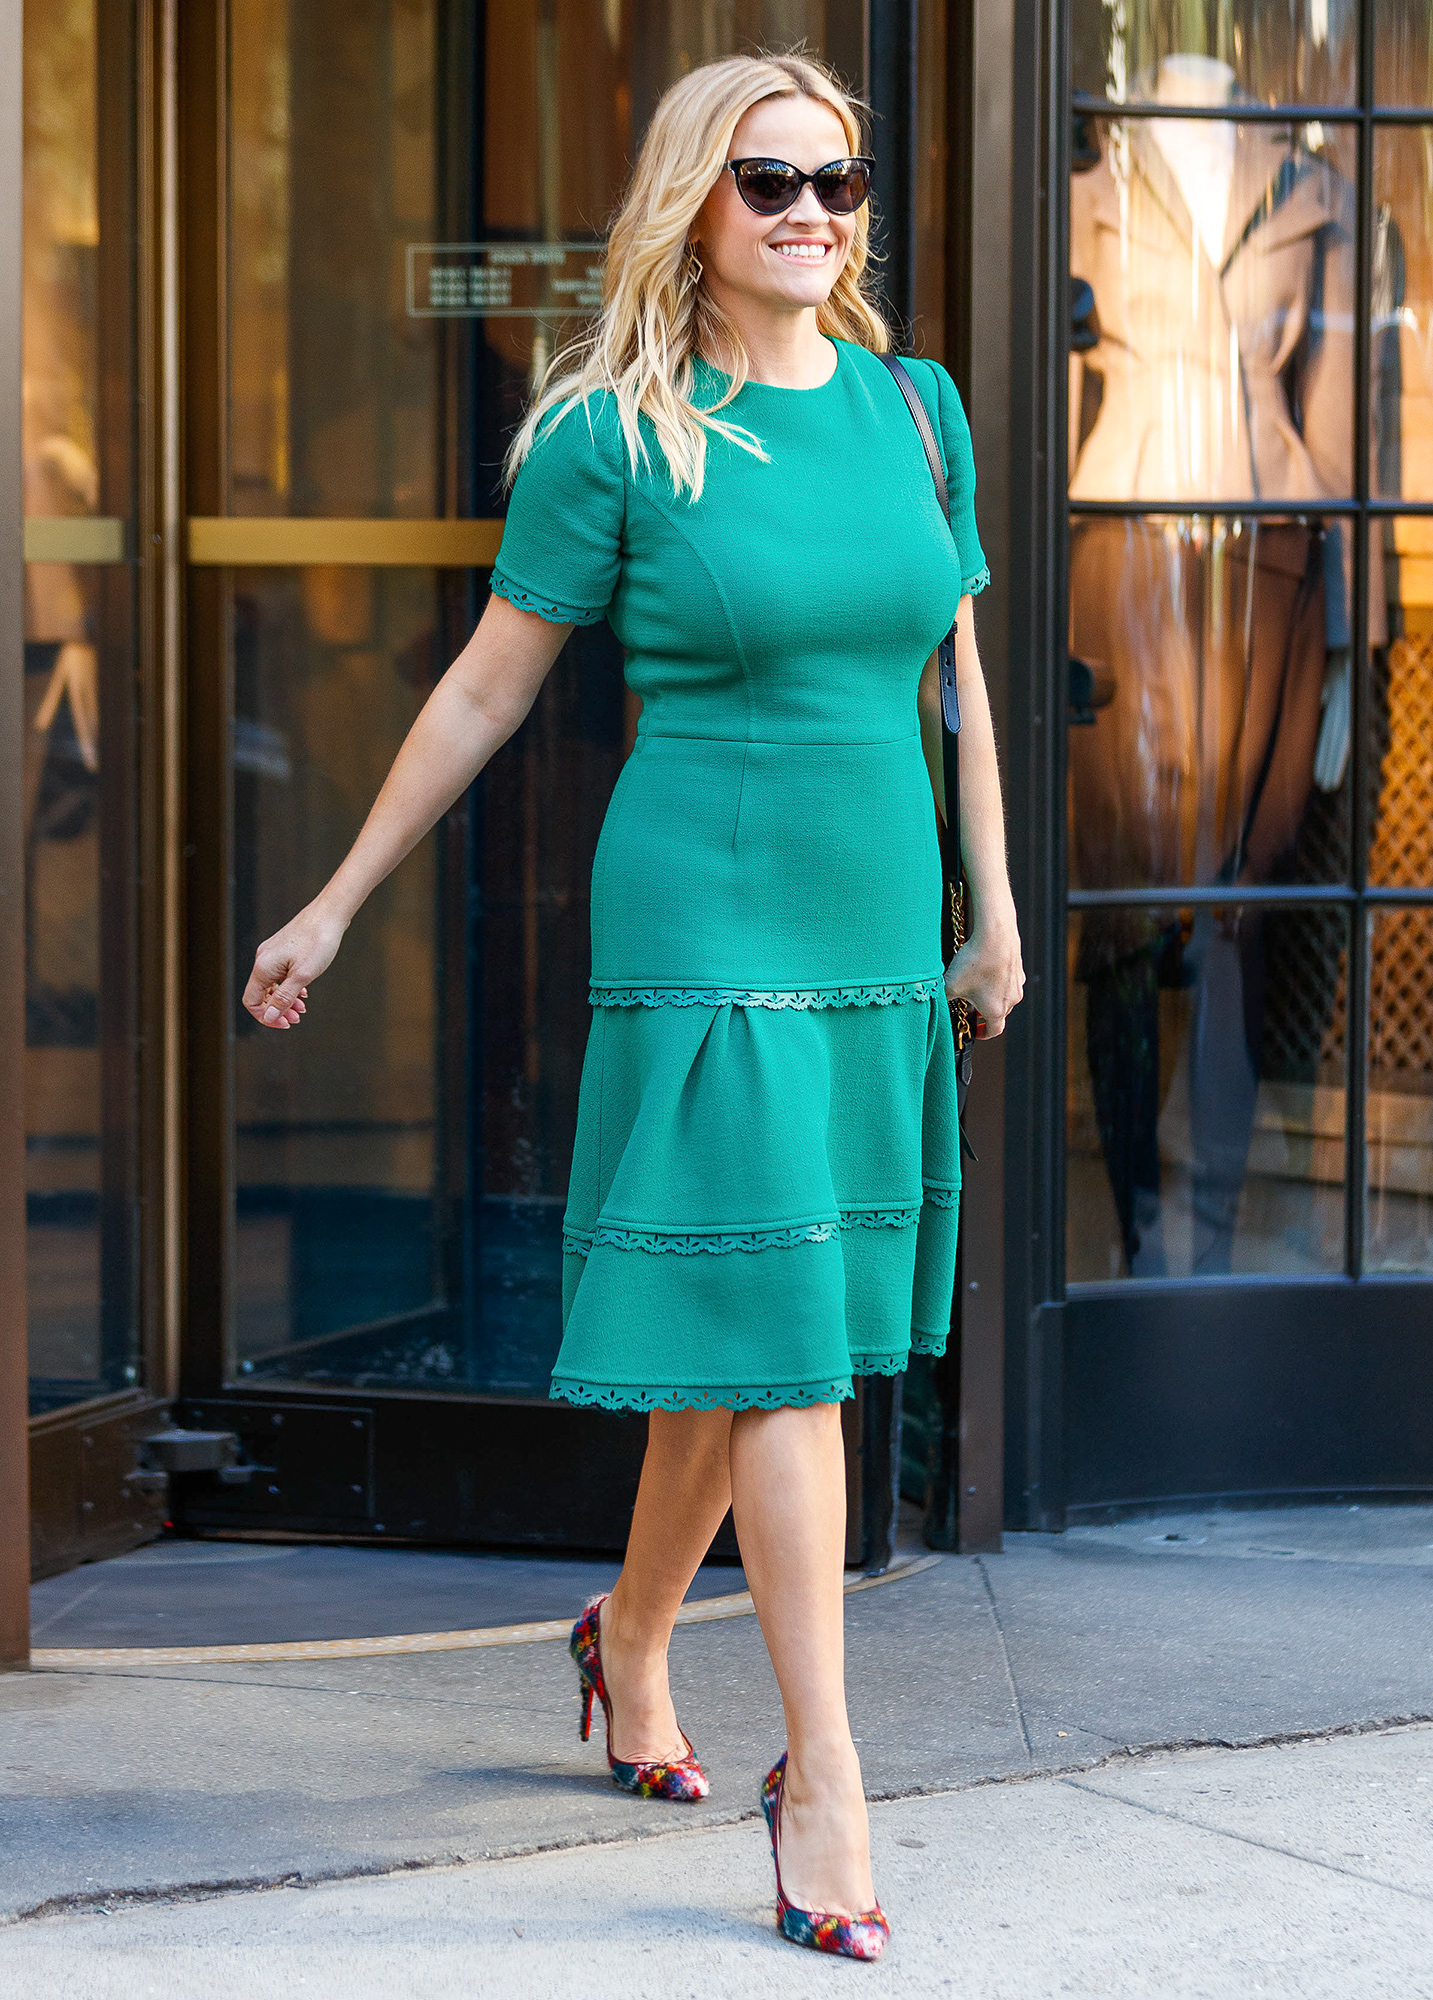 EXCLUSIVE: Reese Witherspoon wears a turquoise dress paired with rainbow colored pumps in New York